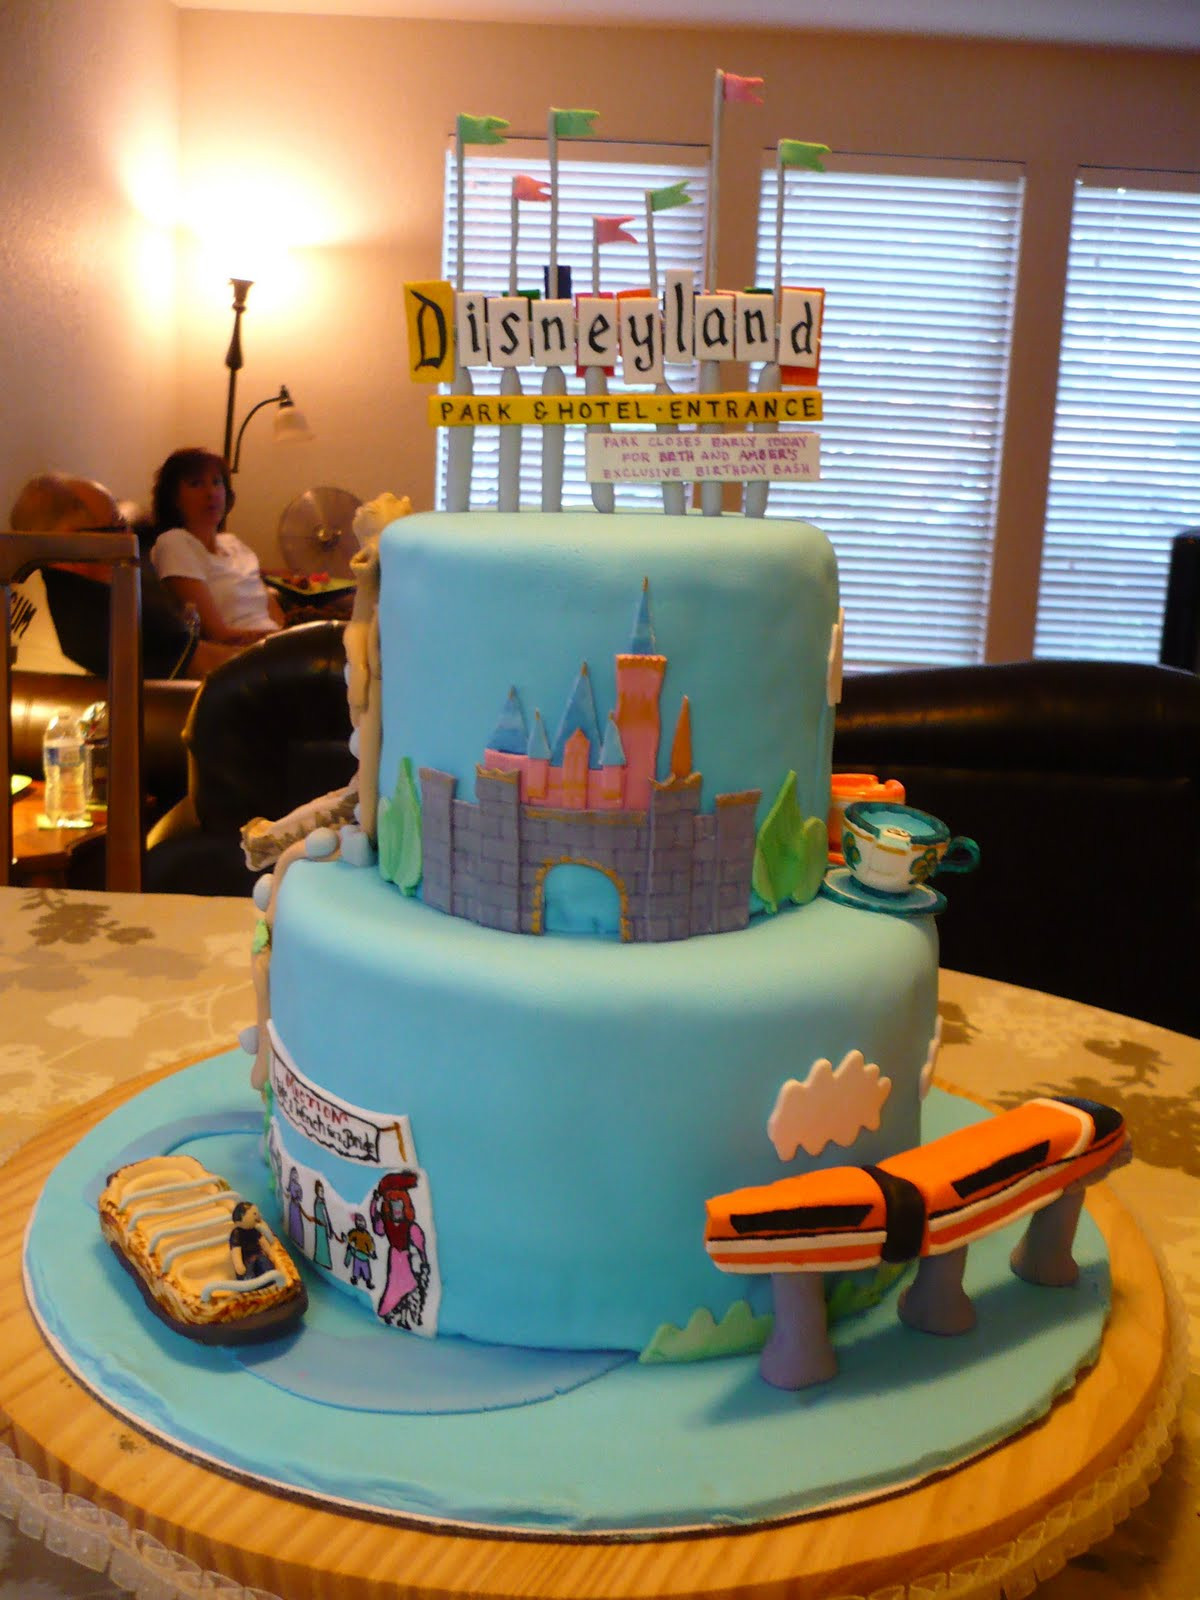 Best ideas about Disneyland Birthday Cake . Save or Pin The Wright Report DISNEYLAND CAKE Now.